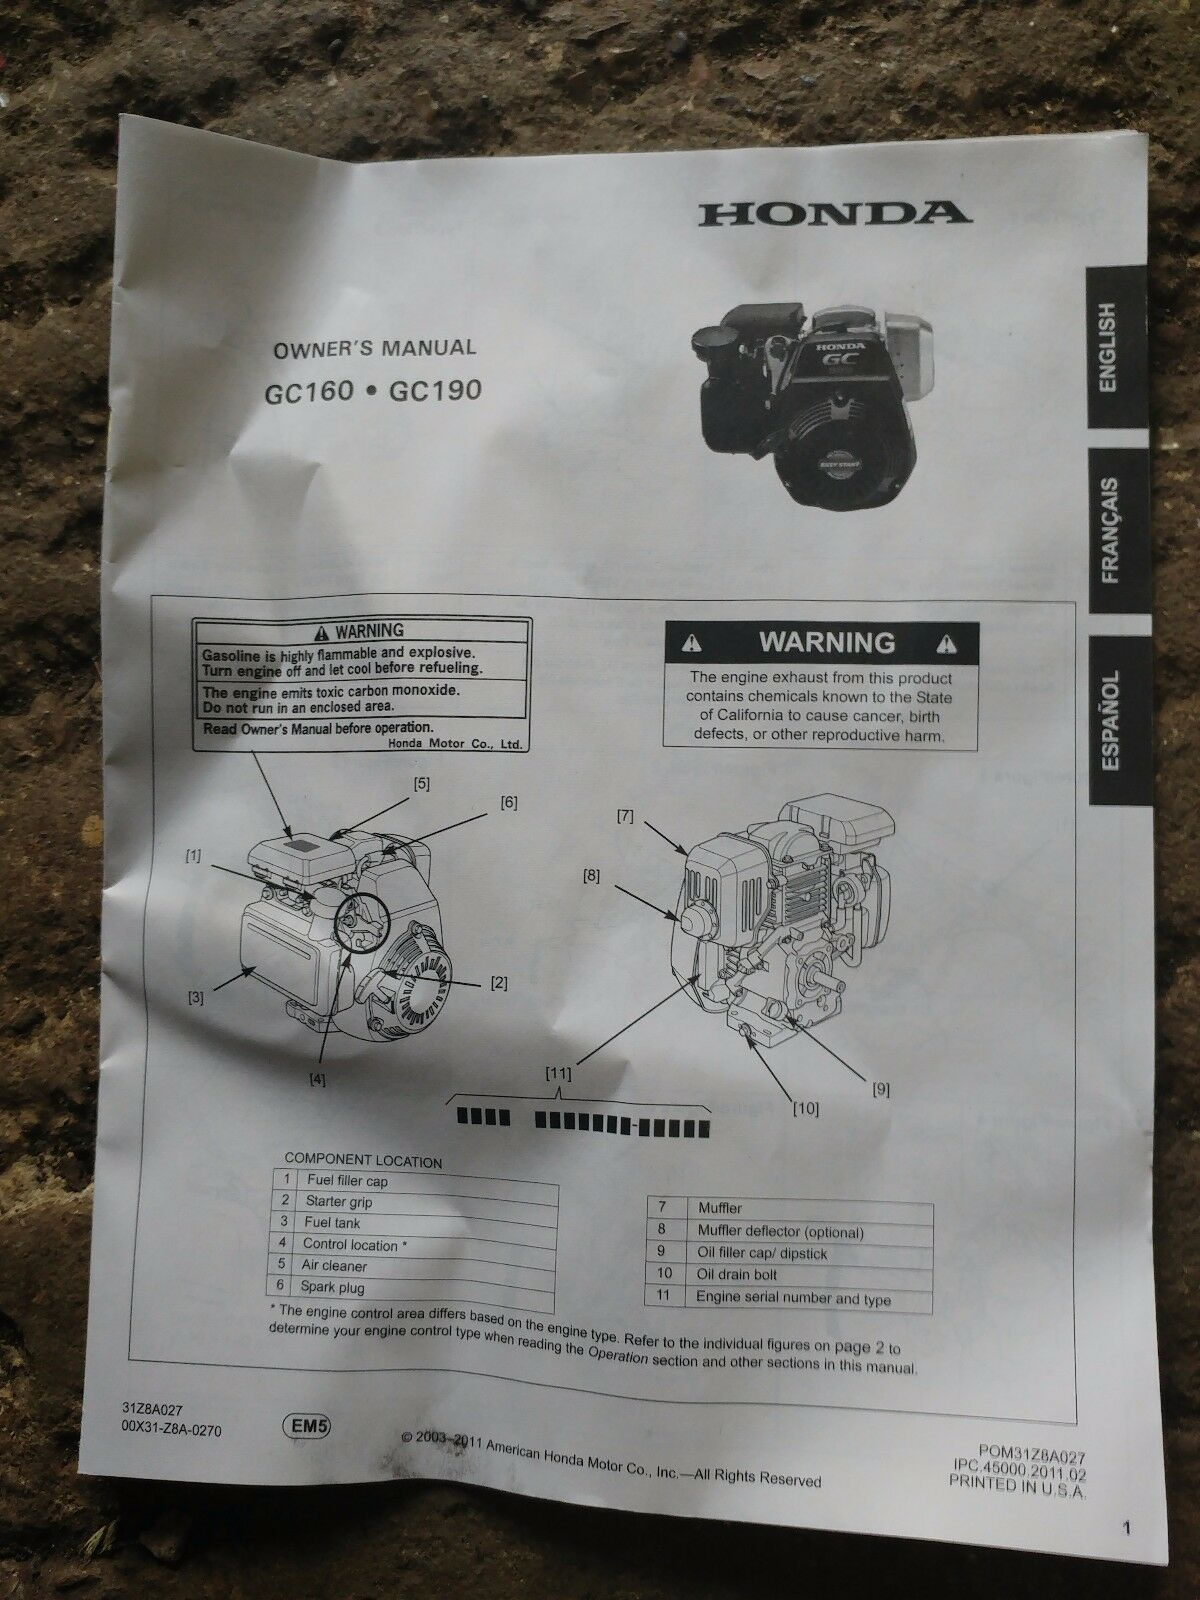 Honda Gc190 Engine Parts Manual 750 Picclick Uk Diagram 1 Of 1free Shipping